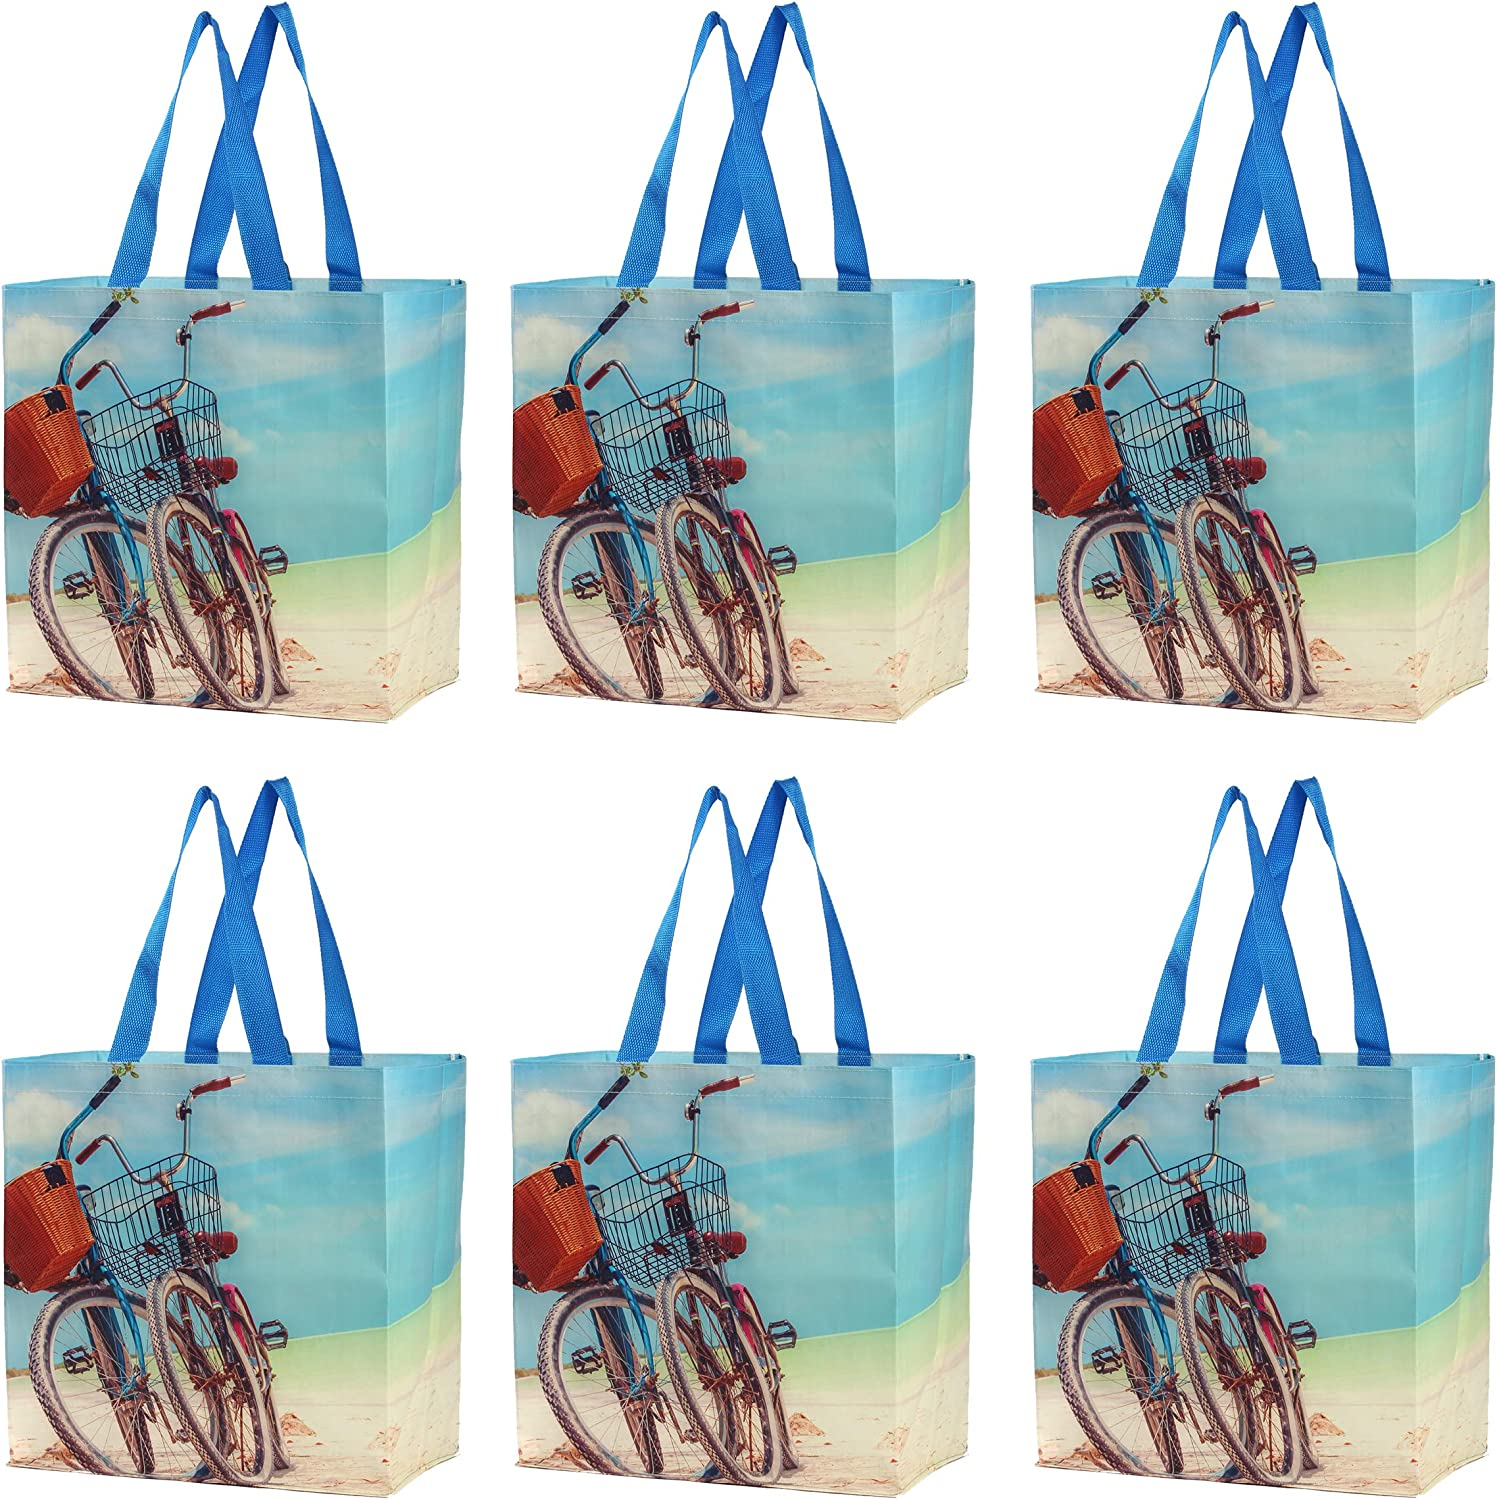 Earthwise Reusable Grocery Bags Shopping Totes Stylish Gift Bag Heavy Duty Laminated Material Beach Print(Pack of 6)